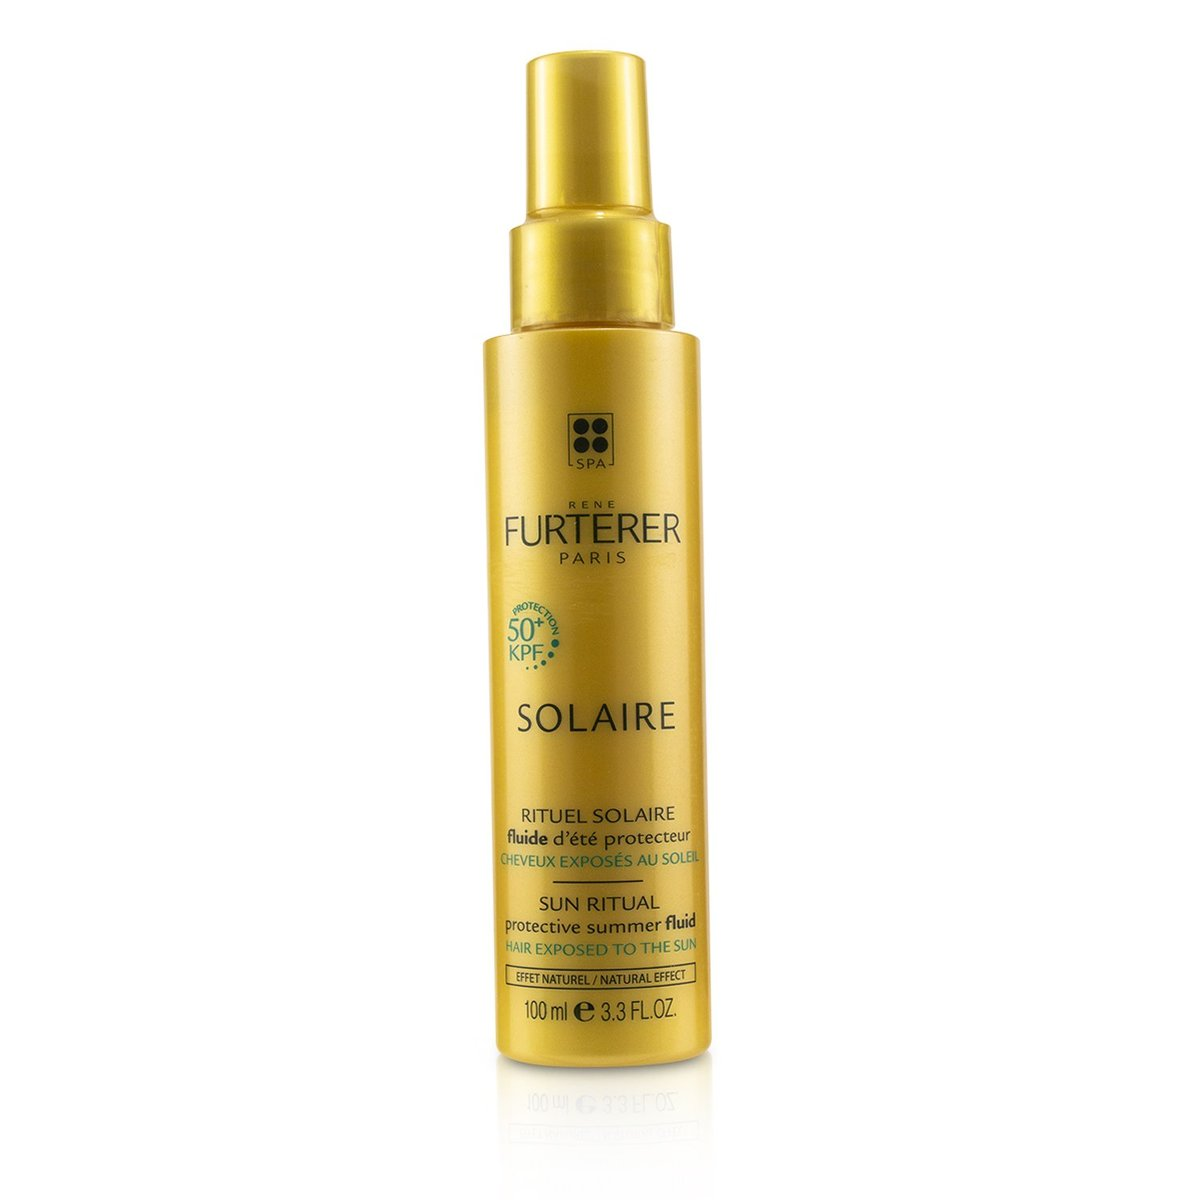 Solaire Sun Ritual Protective Summer Fluid (Hair Exposed To The Sun, Natural Effect)  -[Parallel Imp